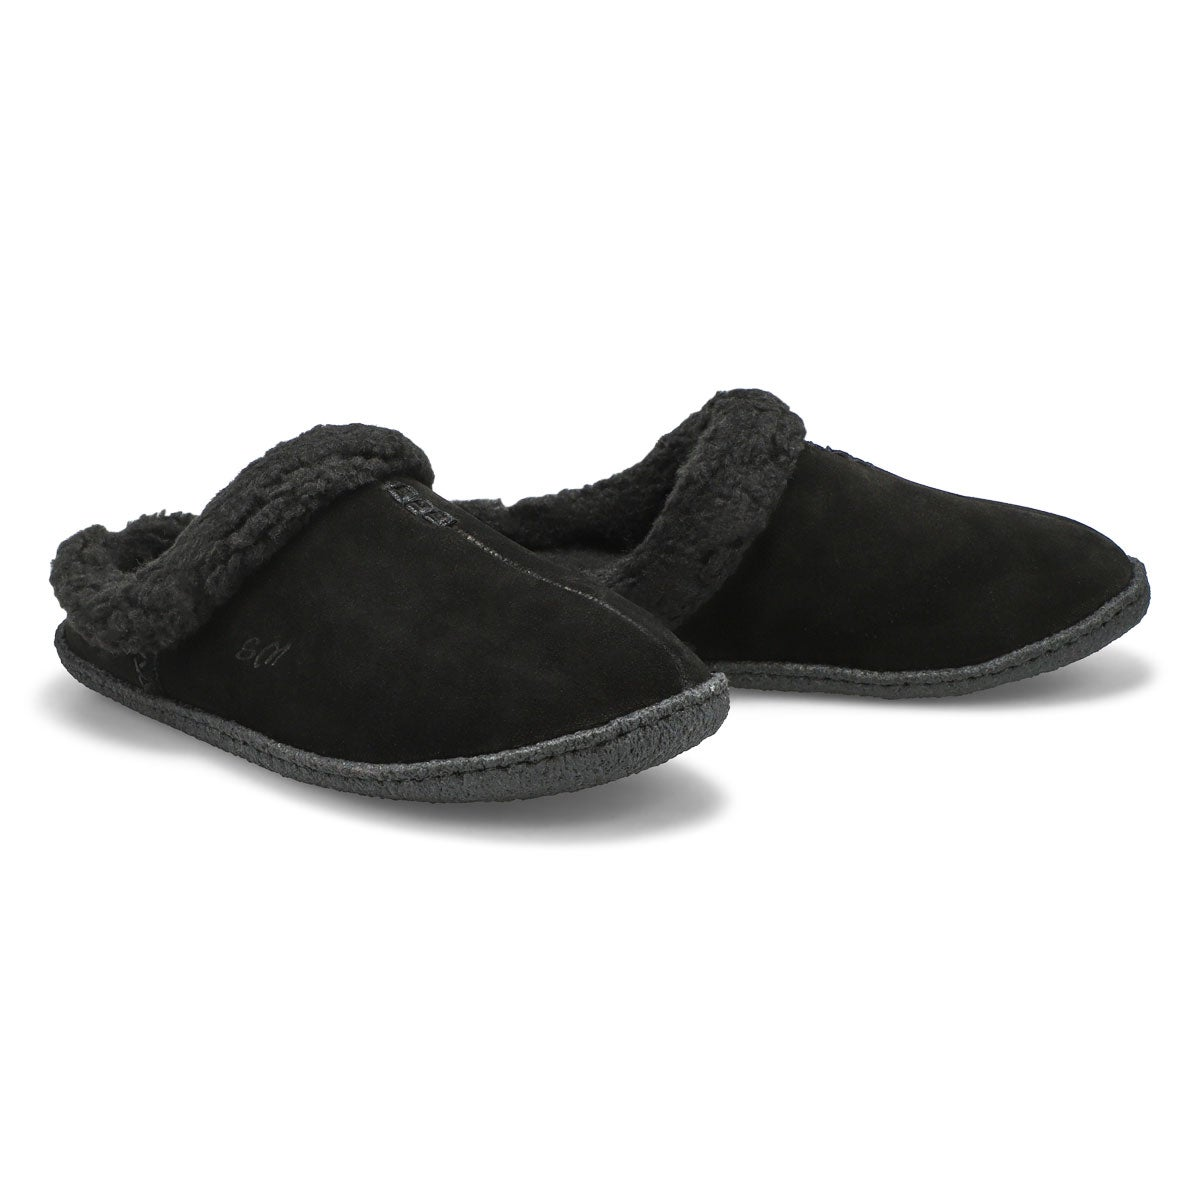 Lds Jupiter bk/bk open back slipper